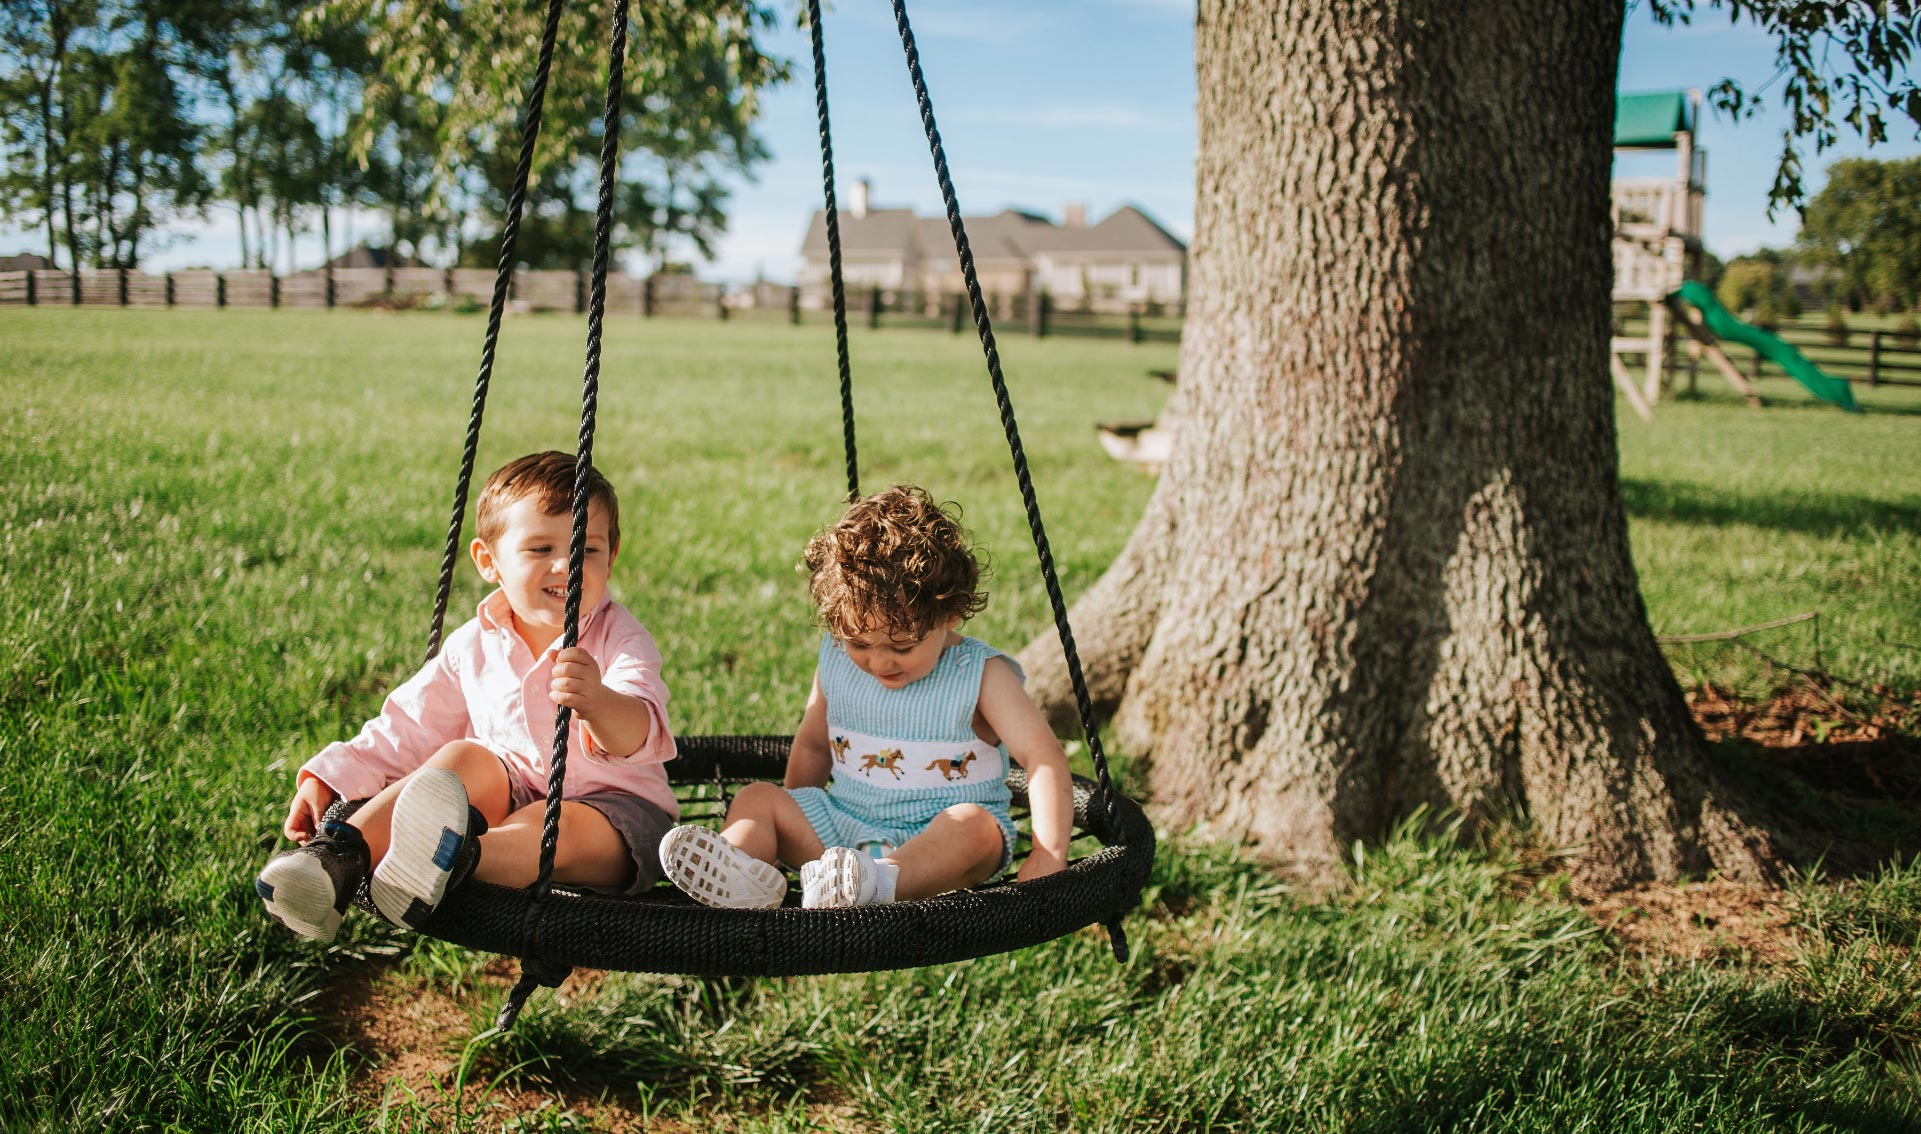 Charlie and his older brother, Baylor, sit on a netted swing in front of a tree. Both are smiling.